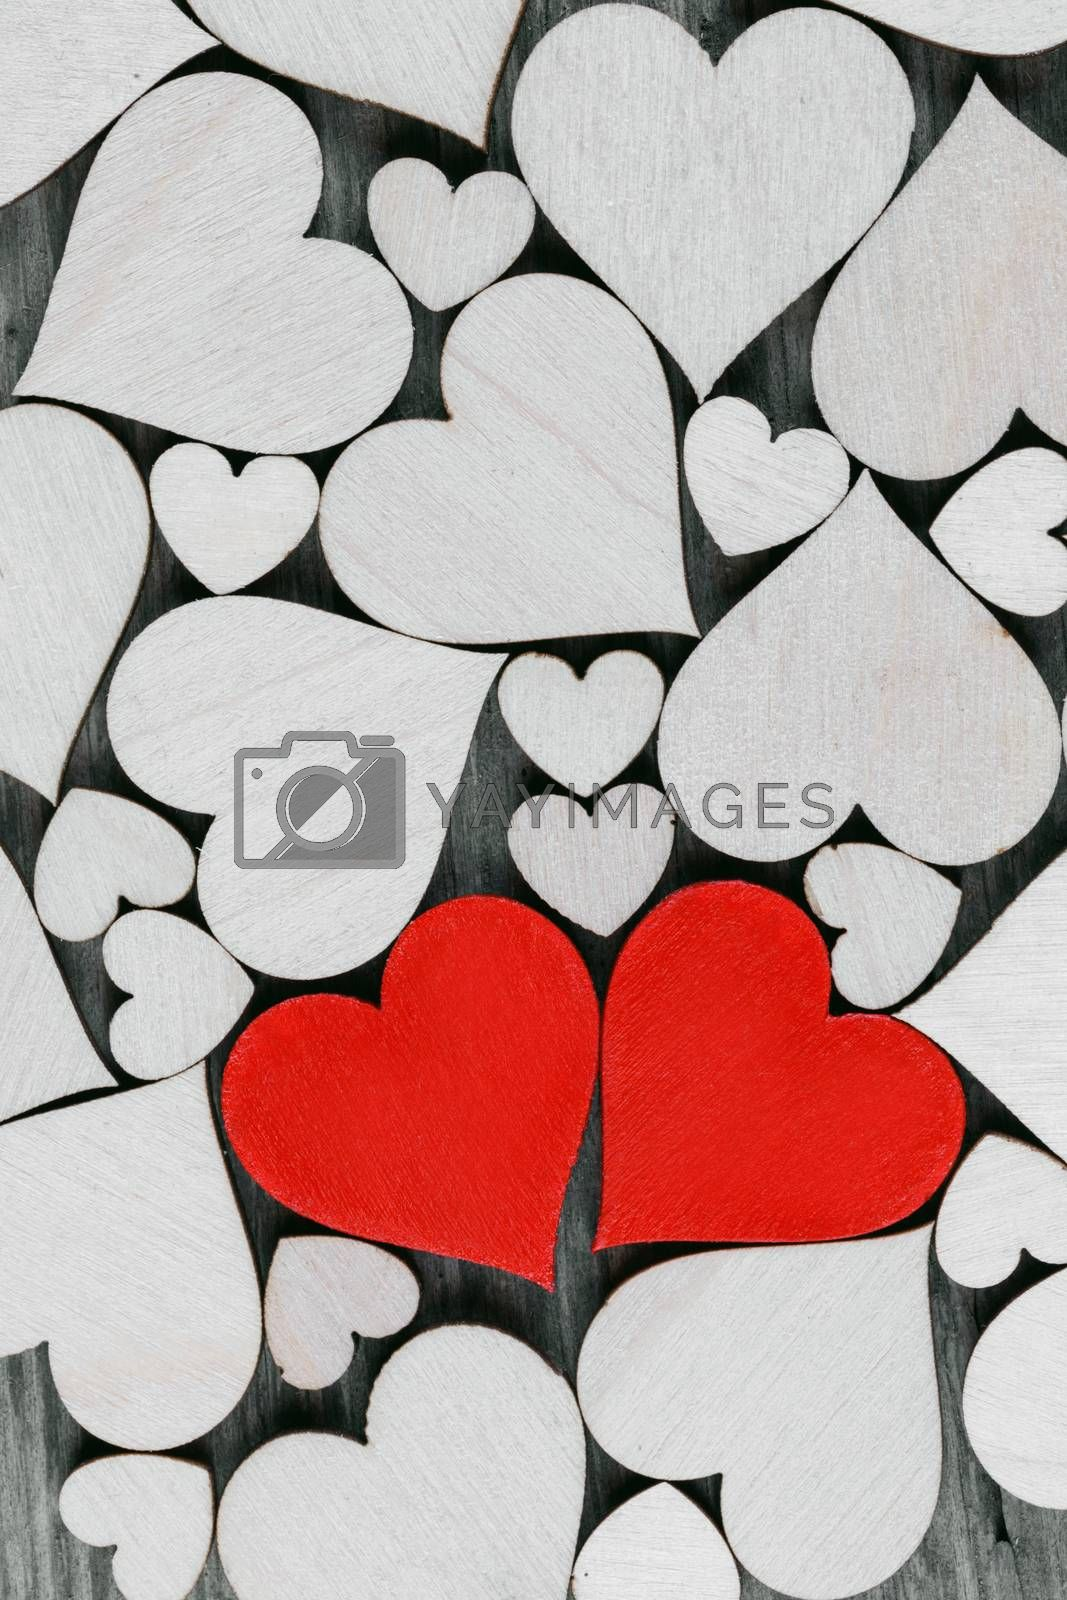 Vintage style of 2 red hearts with wooden hearts background . Happy Valentine's Day concept .